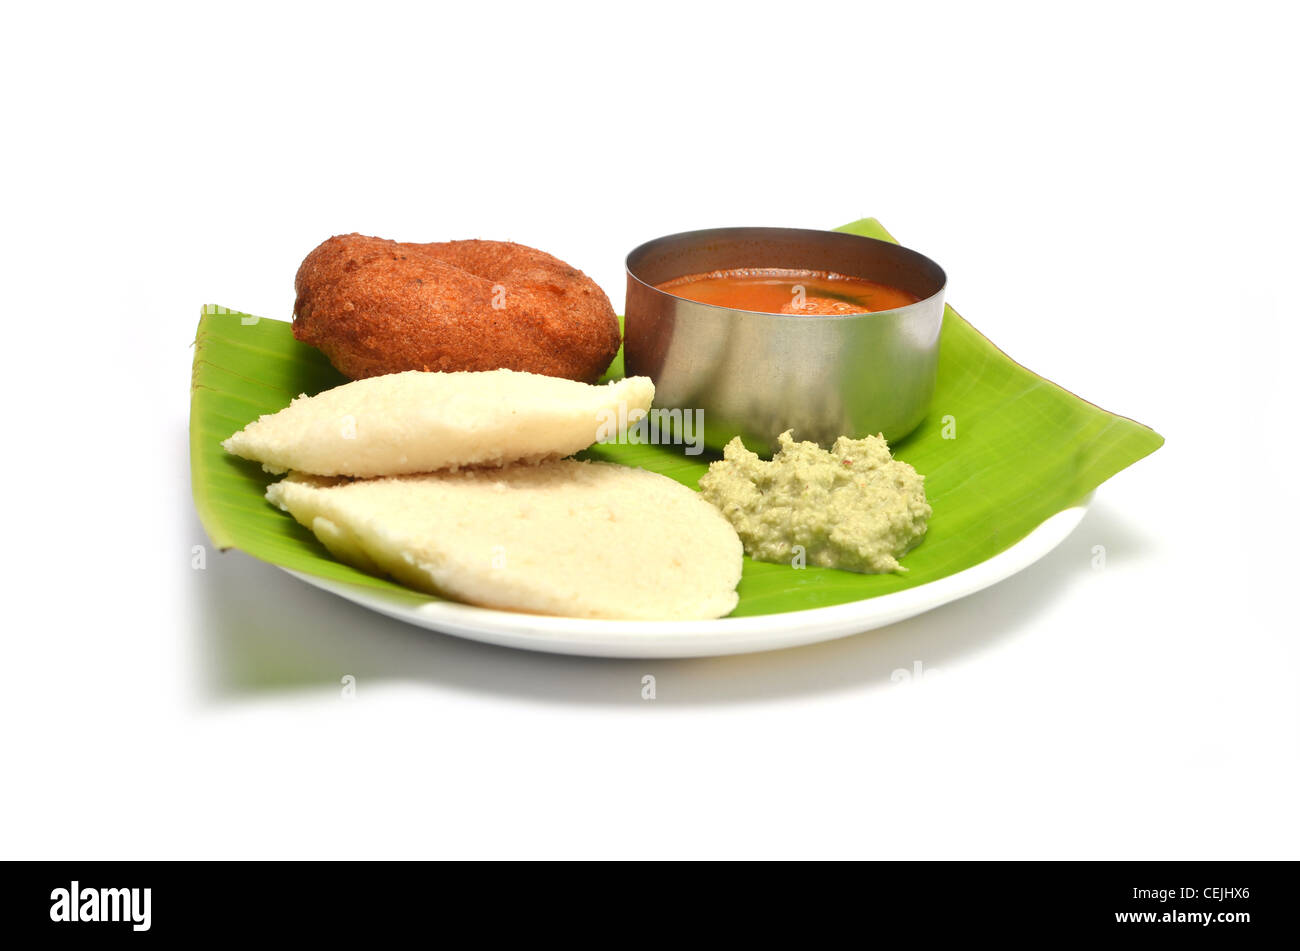 Idli, vada sambhar and chutney, south Indian dish served on Banana Leaf, isolated on white background Stock Photo